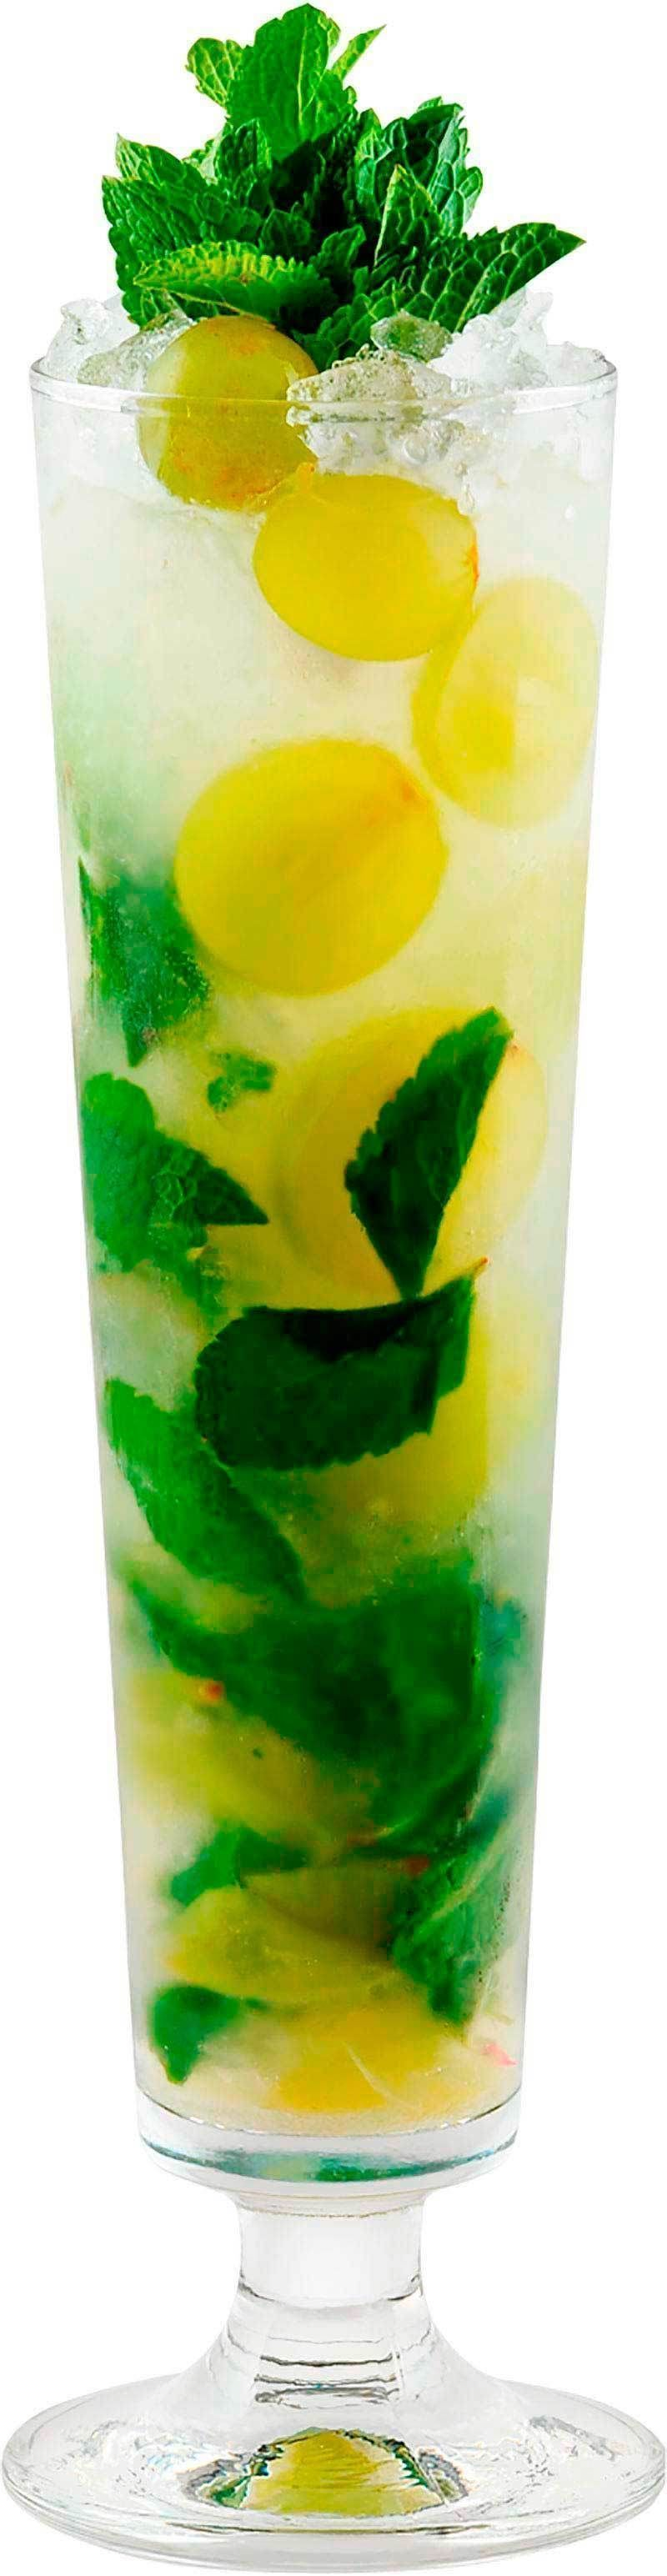 Come Fare il Mojito all'Uva